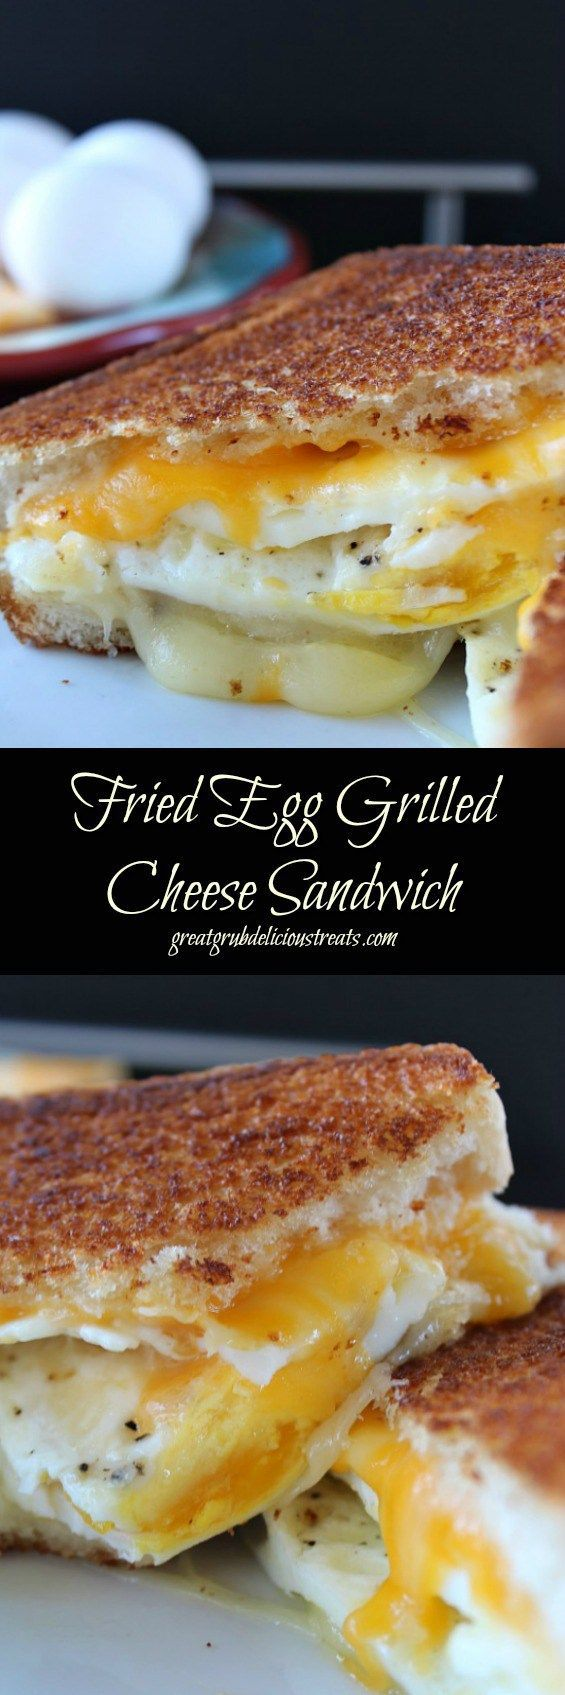 Fried Egg Grilled Cheese Sandwich ~ This is delicious and so cheesy! What a great breakfast sandwich to start your day! #ad